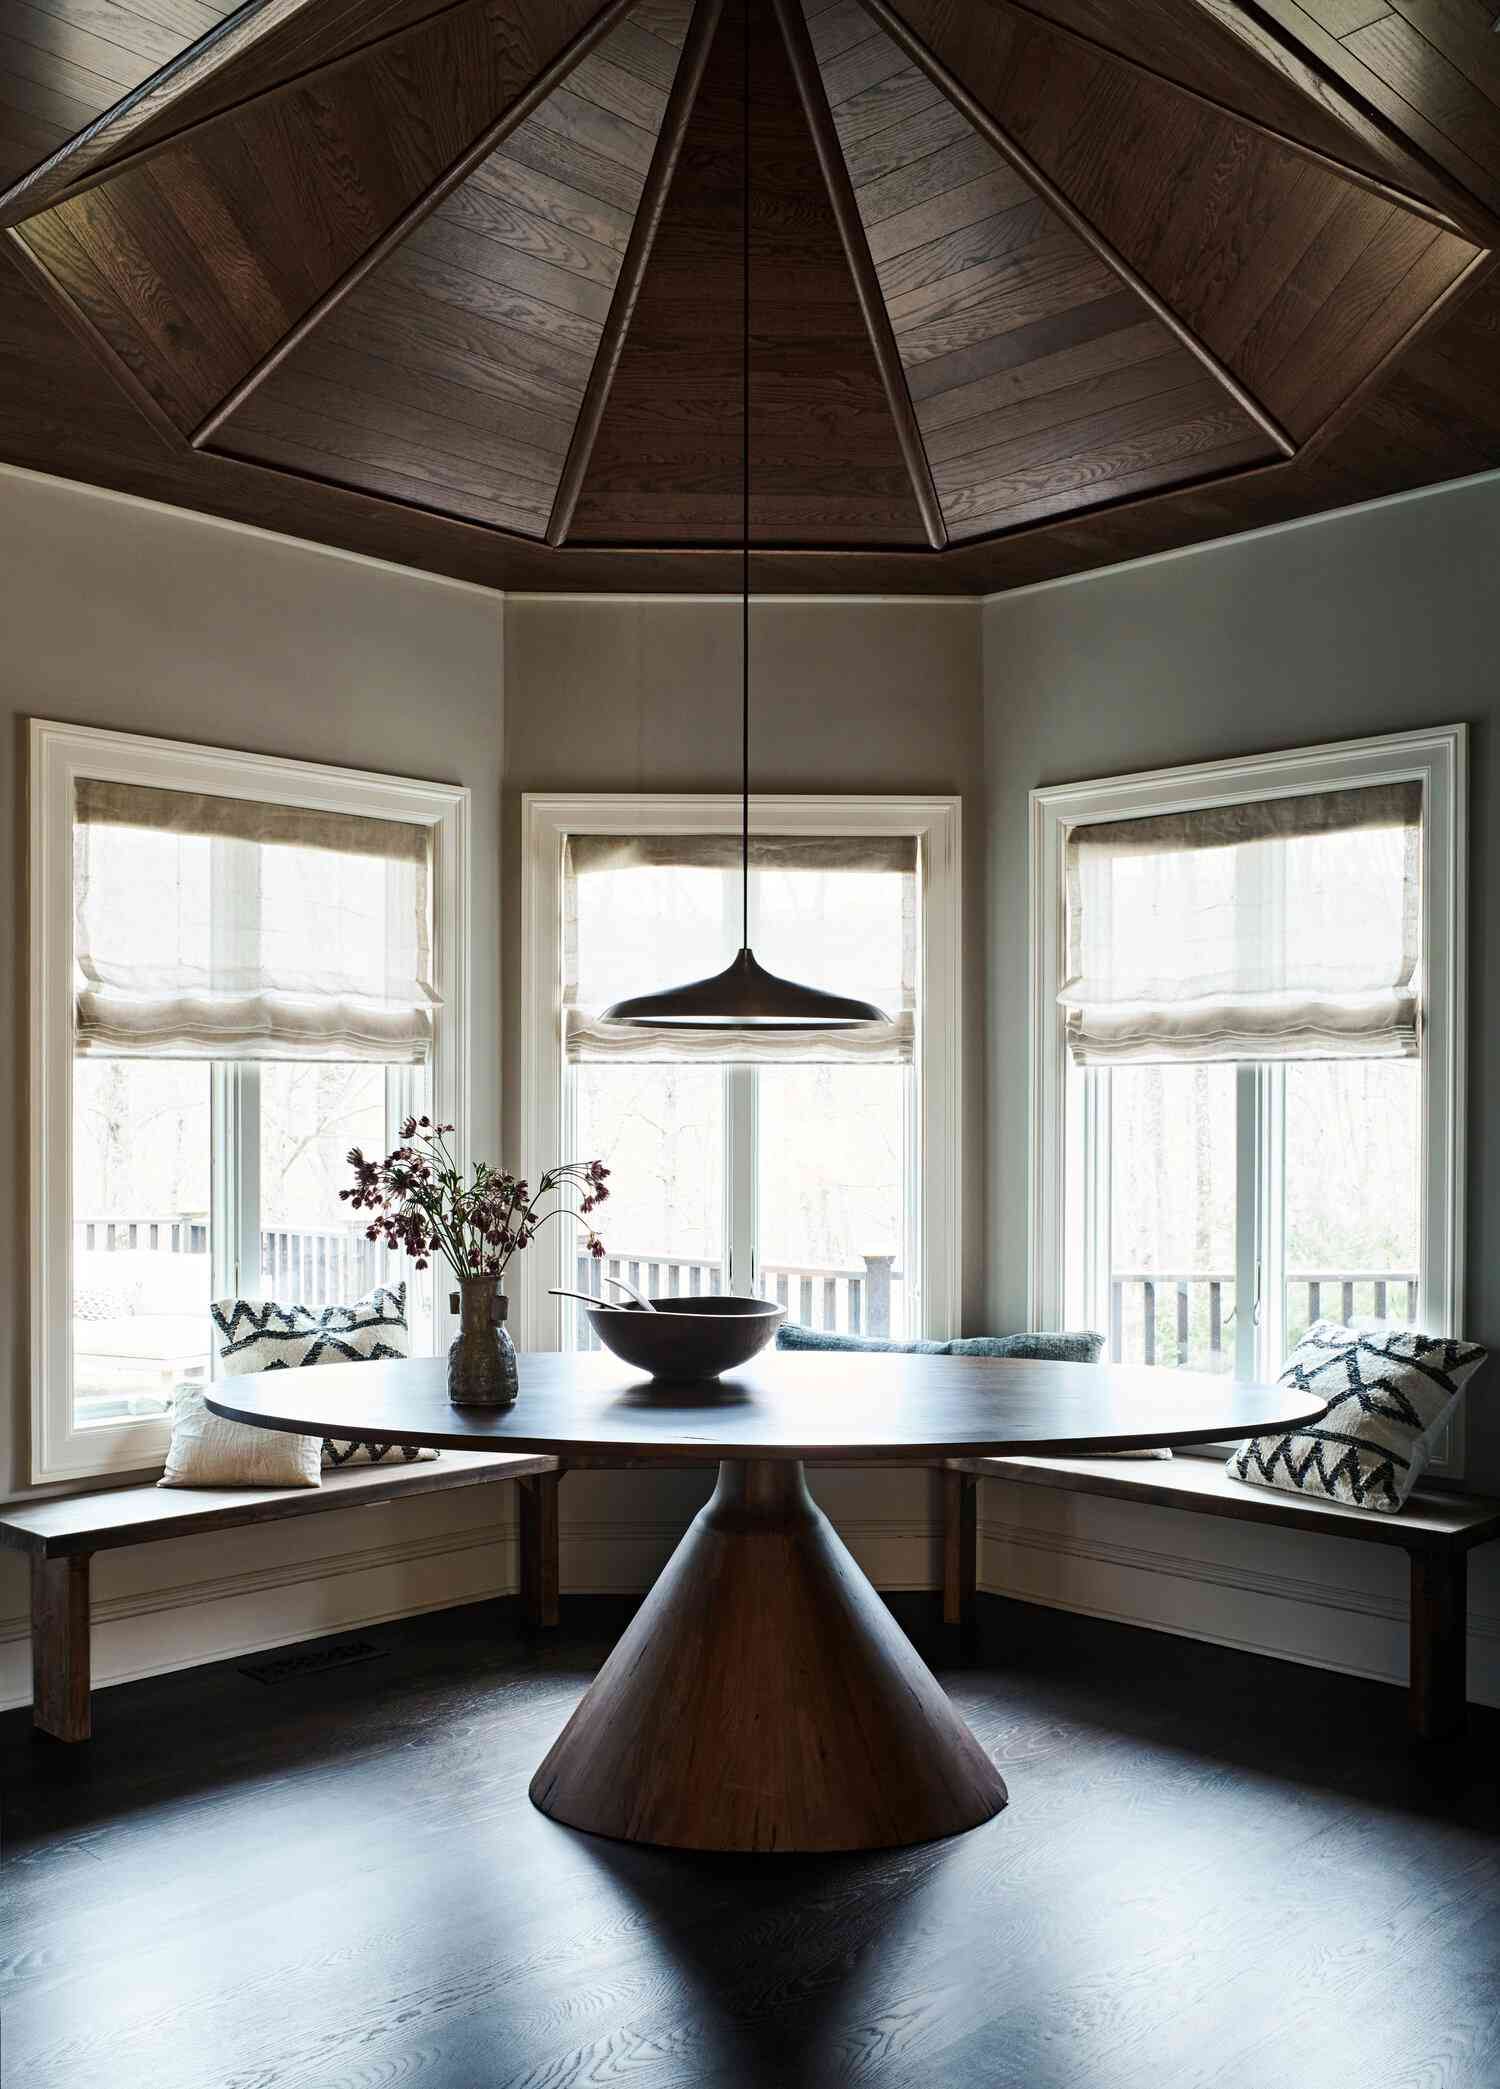 Dining nook with round wood ceiling